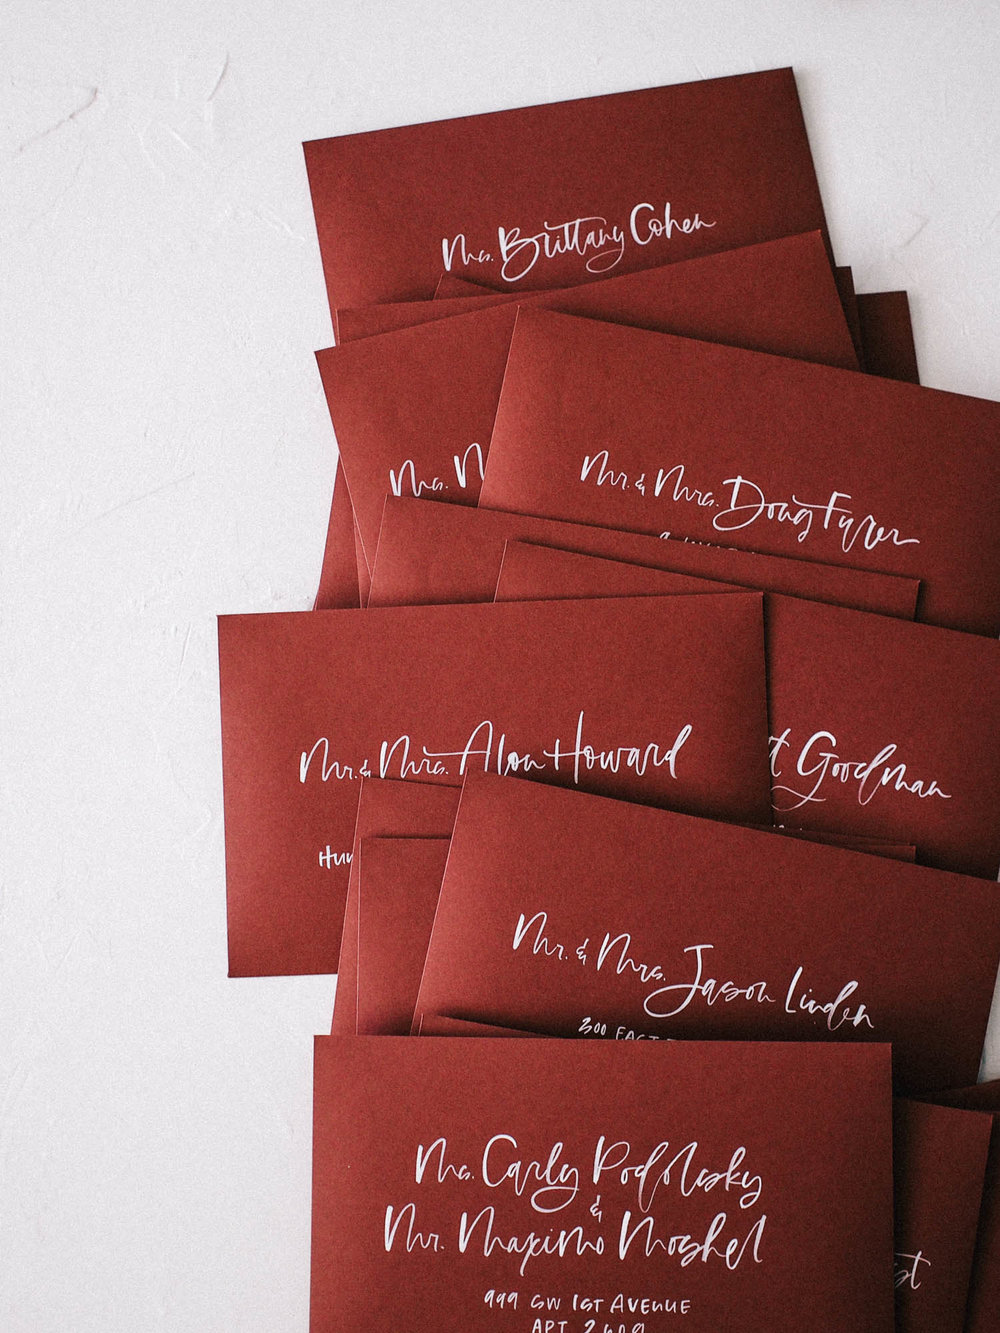 How to hand letter dark envelopes in white | A Fabulous Fete